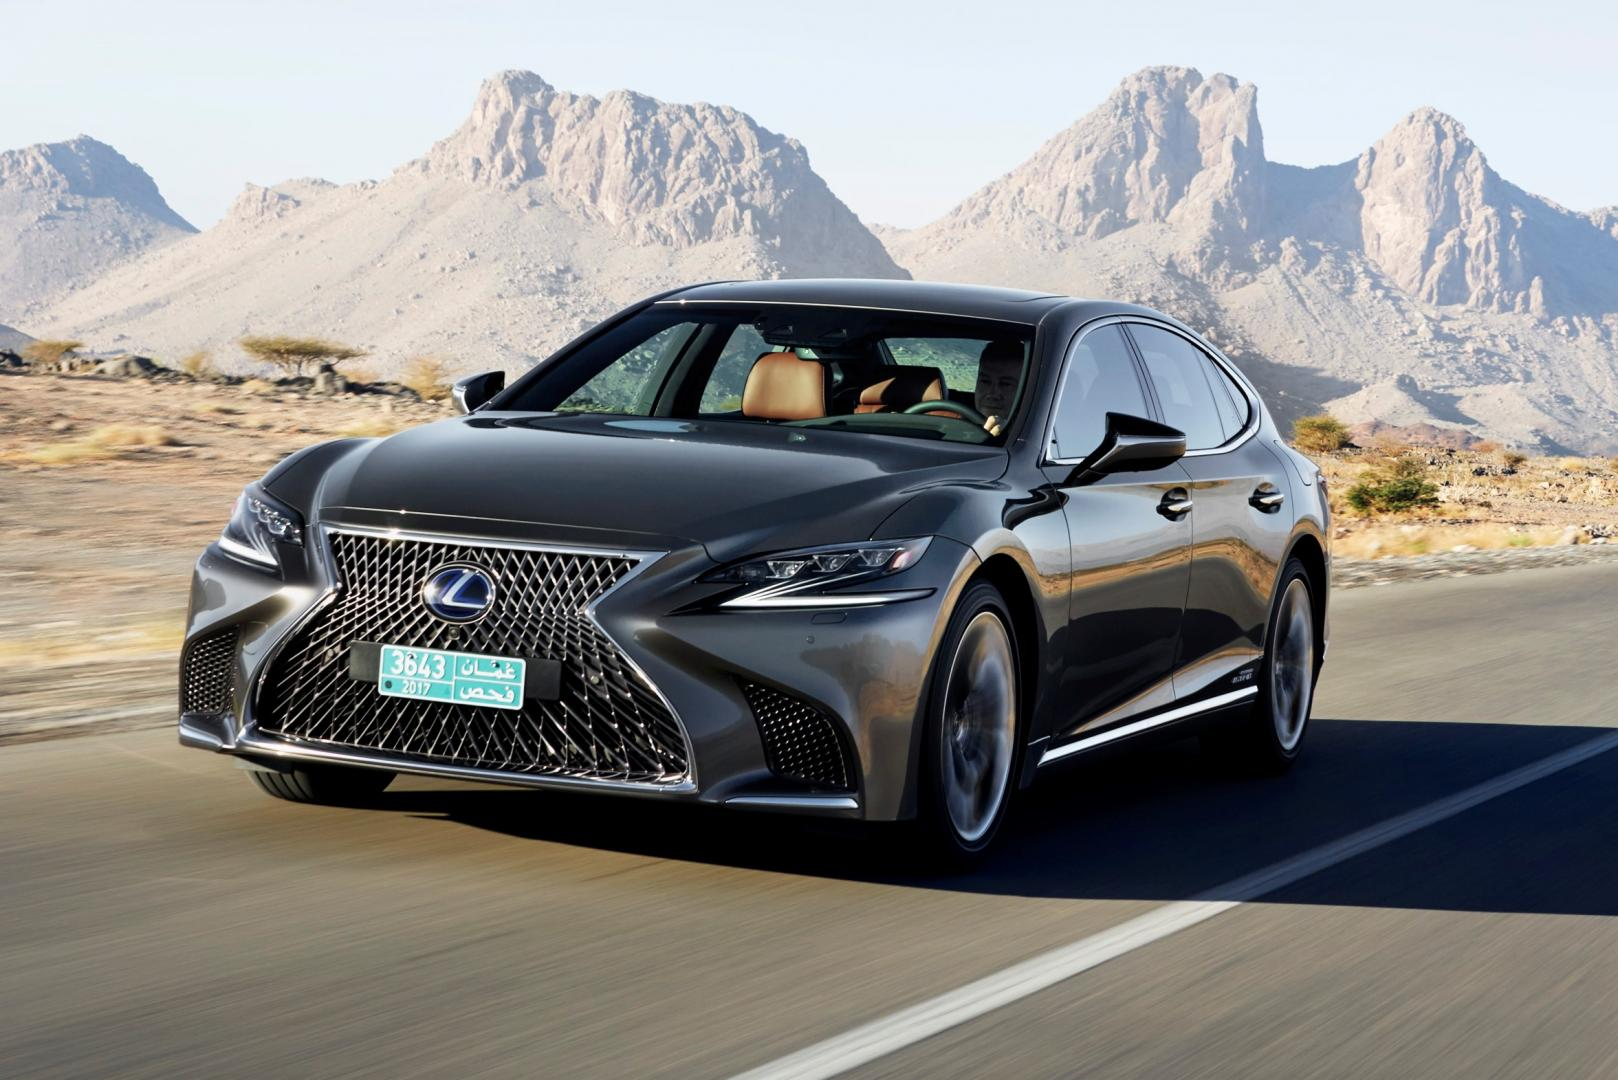 lexus ls 500h awd president line 2018 test specificaties topgear. Black Bedroom Furniture Sets. Home Design Ideas